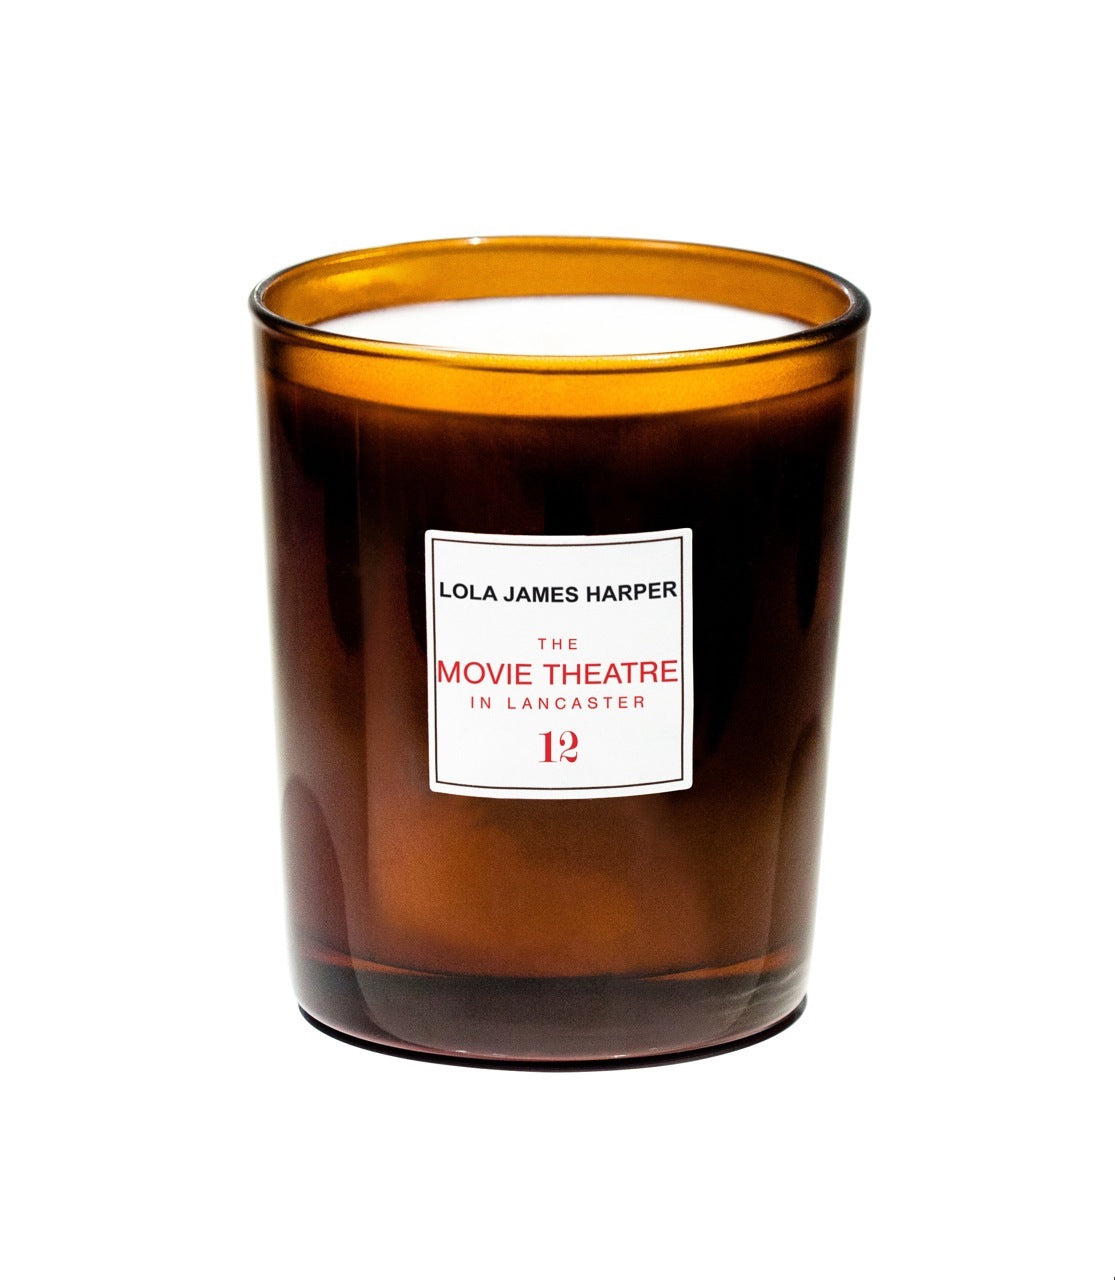 LOLA JAMES HARPER - 12 The Movie Theater in Lancaster - 190G CANDLE